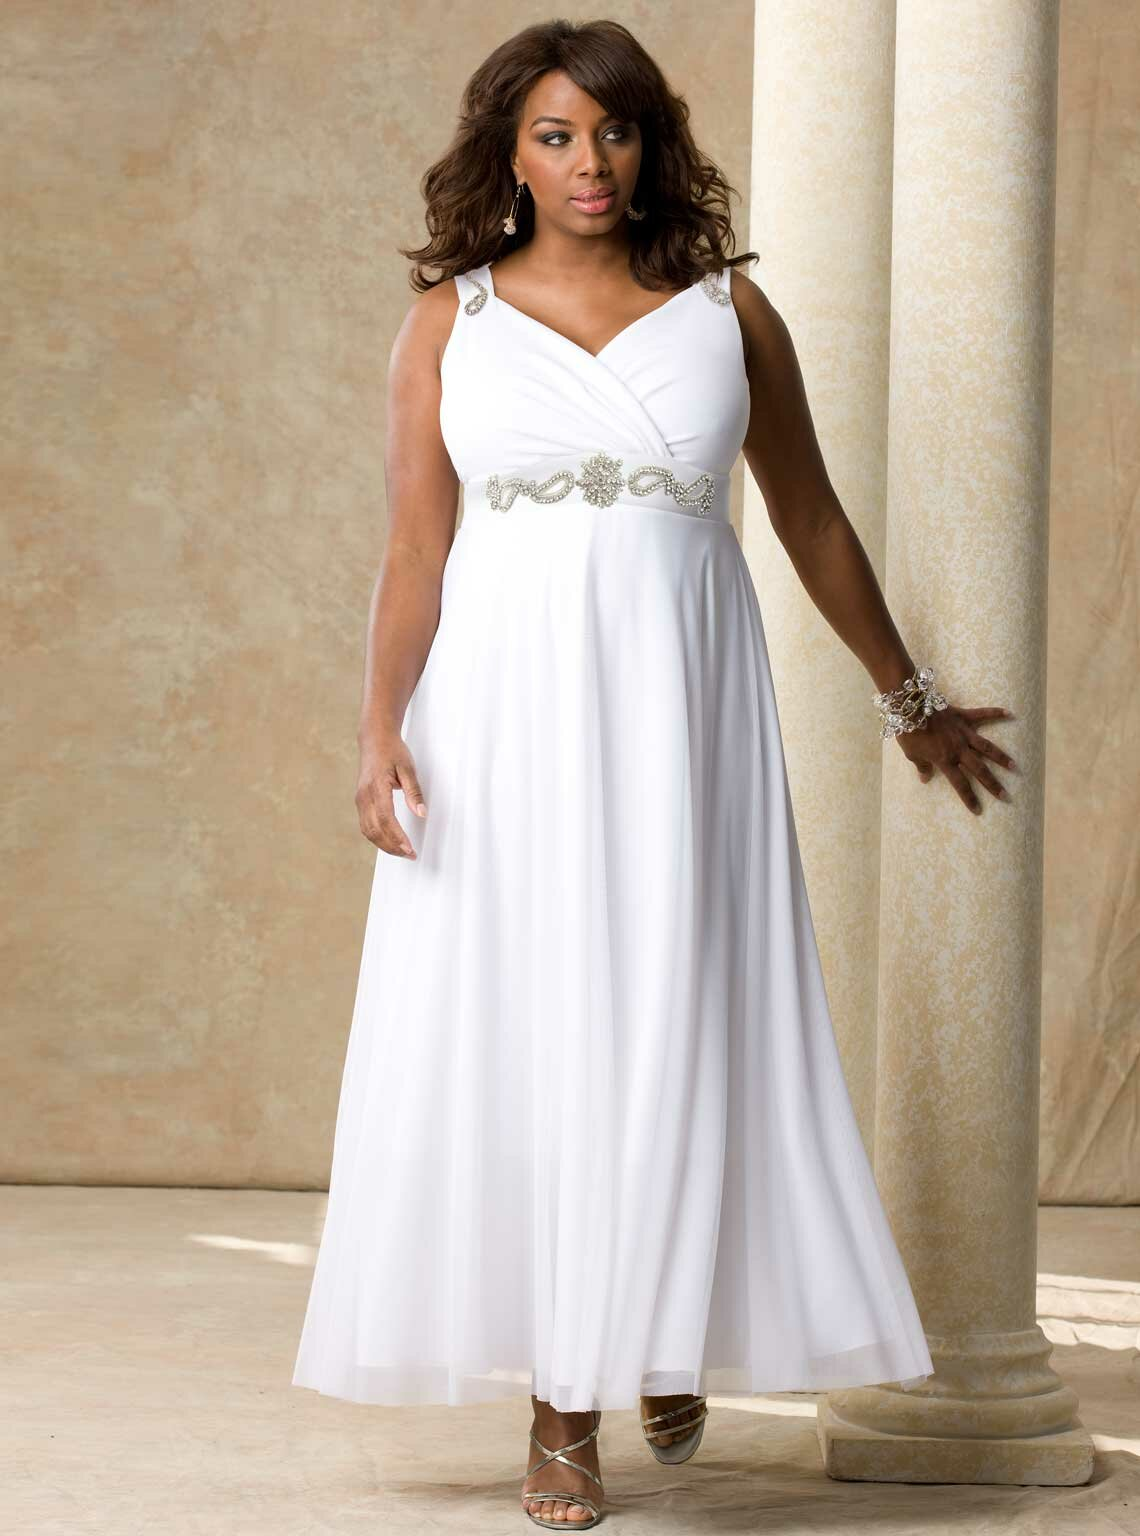 plus size wedding outfits wedding outfits Plus size wedding outfits Wedding Guest Dresses Plus Size